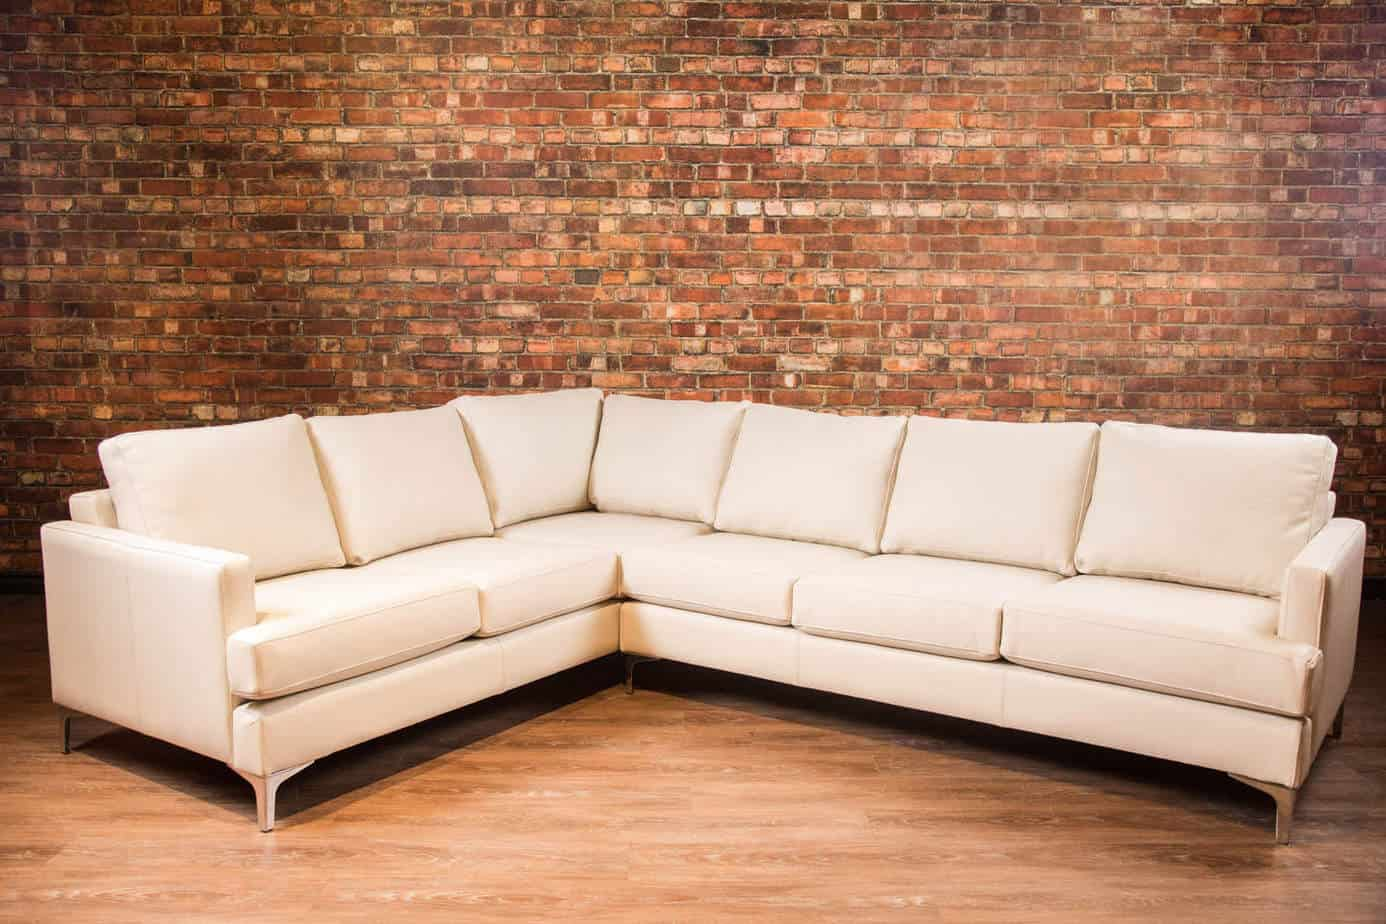 The New York New York Leather Sectional | Canada's Boss ...